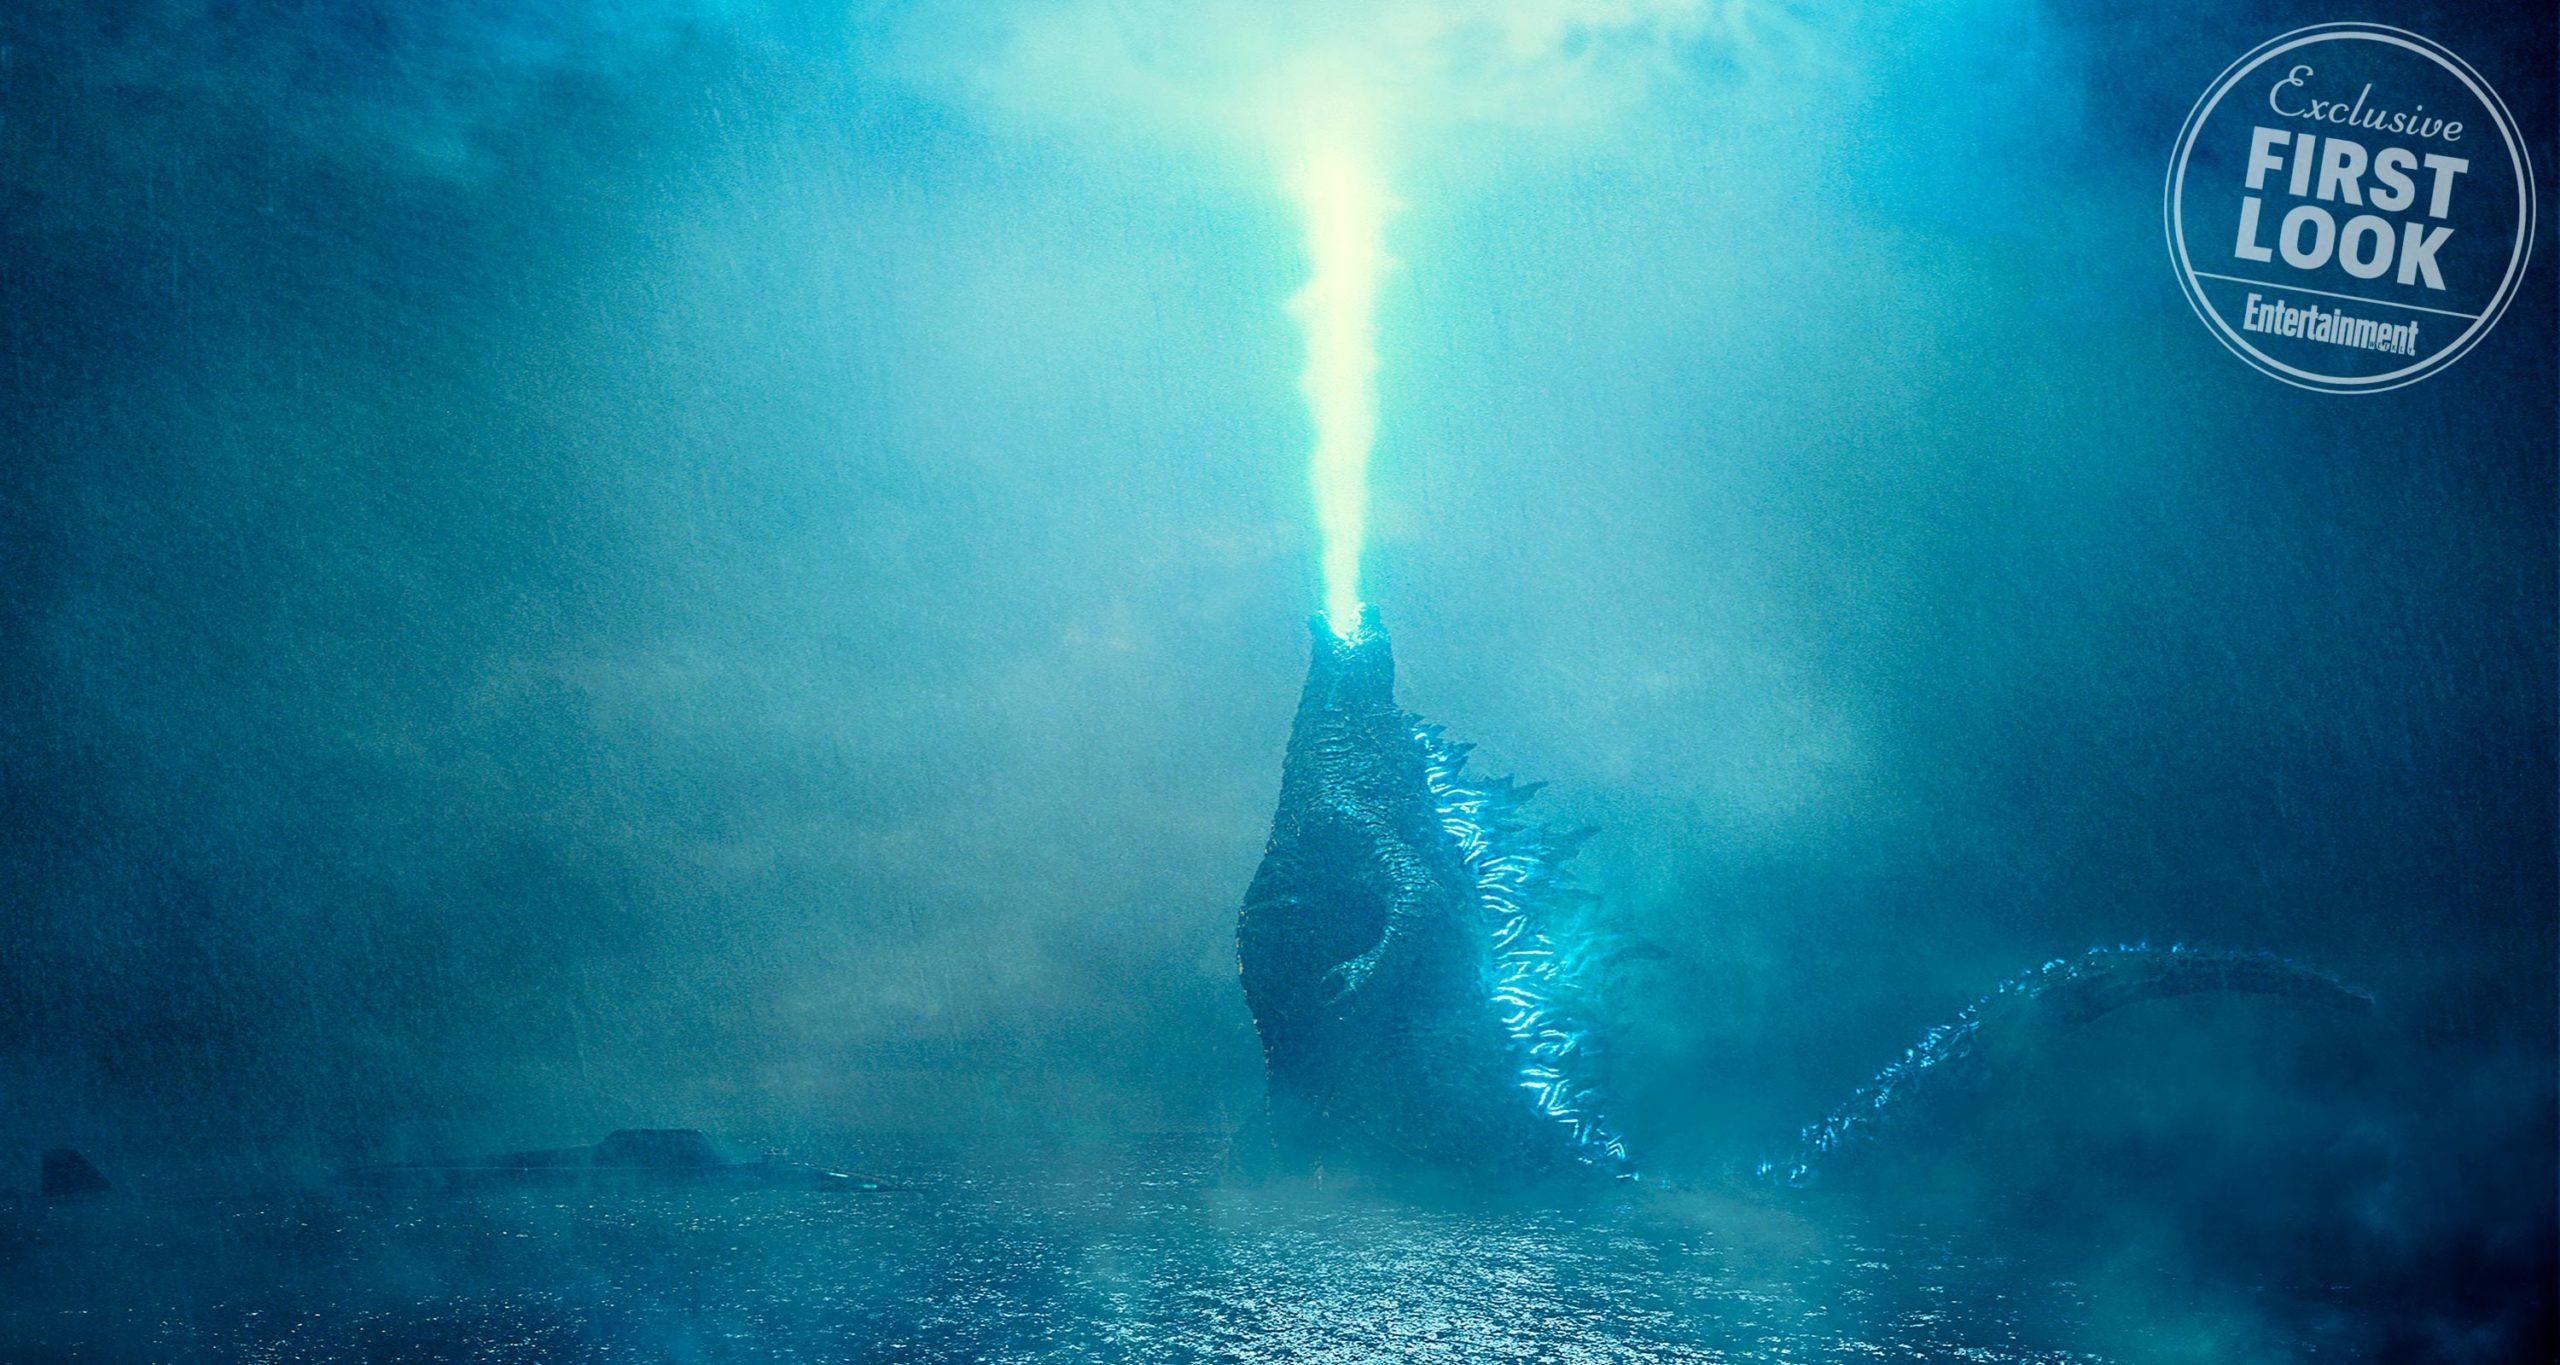 Photo du film Godzilla: King of the Monsters avec un premier aperçu de Godzilla